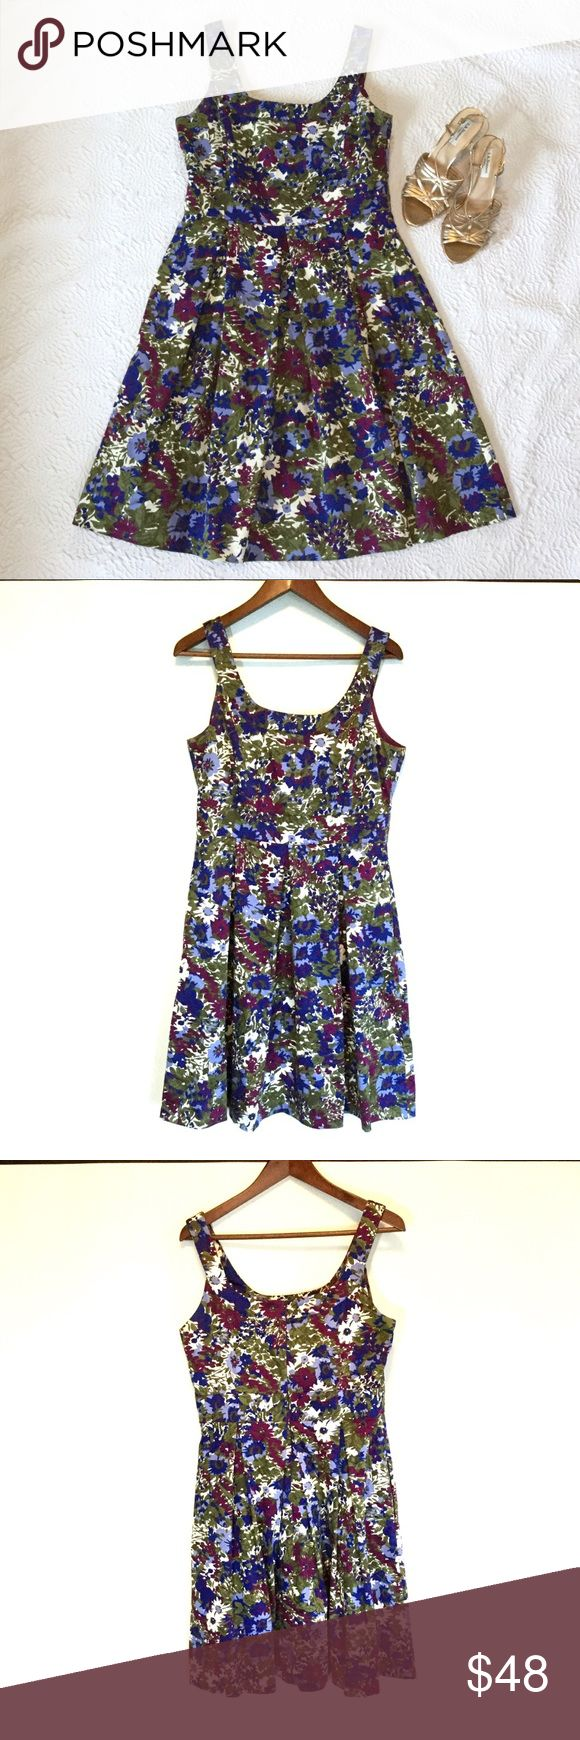 Donna Ricco beautiful floral dress EUC This Donna Ricco dress is amazingly beautiful.  96% cotton, 4% spandex. Great material that is cool to the touch, making it a perfect garden dress for summer. High waist shift. The dress has bra strap holder at the shoulder. Great looking dress! Donna Ricco Dresses Midi